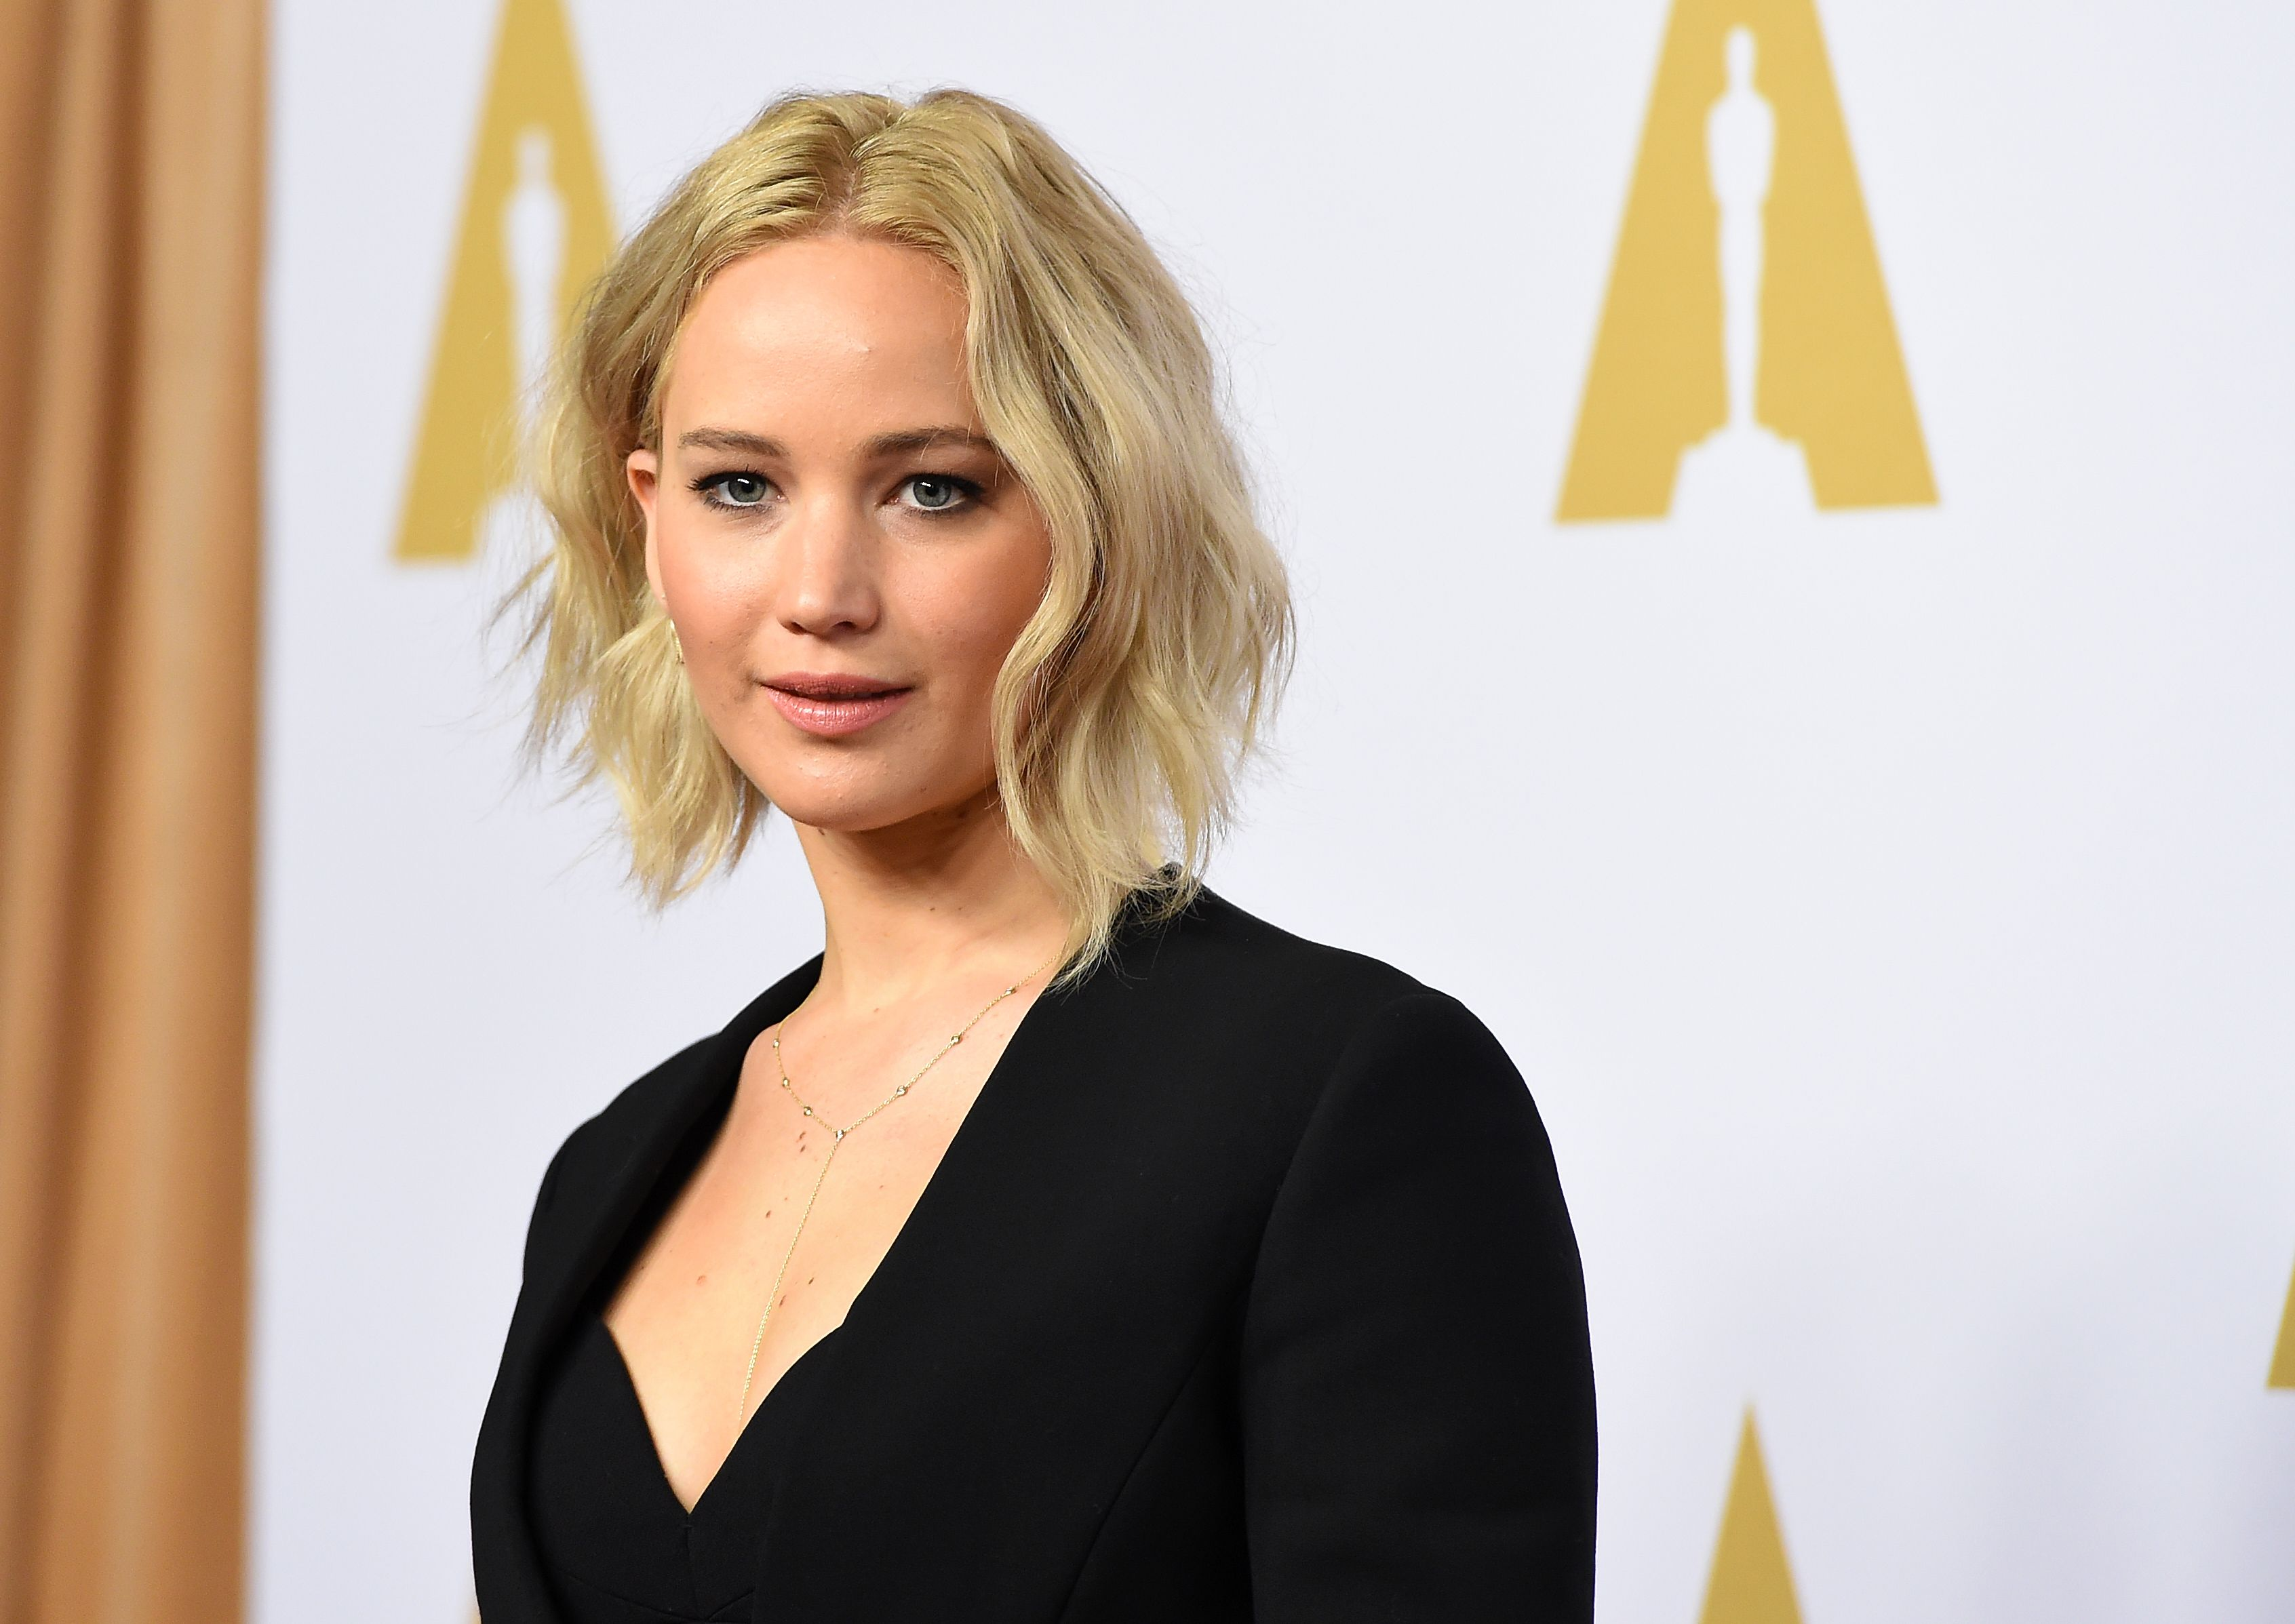 Jennifer Lawrence, nominee for best actress in a leading role, arrives at the 88th Oscar Nominees Luncheon in Beverly Hills, California, February 8, 2016